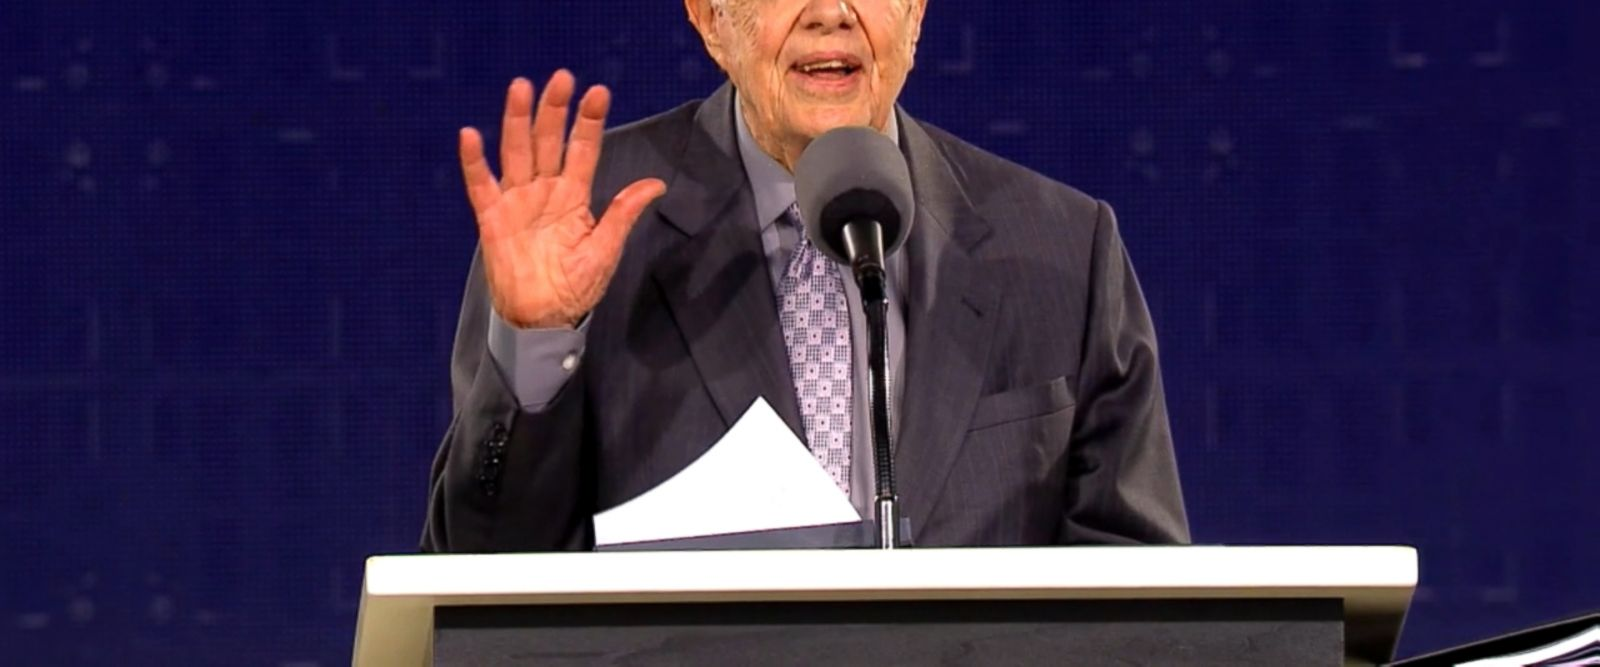 VIDEO: Former President Jimmy Carter talked big about the crowd size while delivering the keynote speech a year after President Trump did.